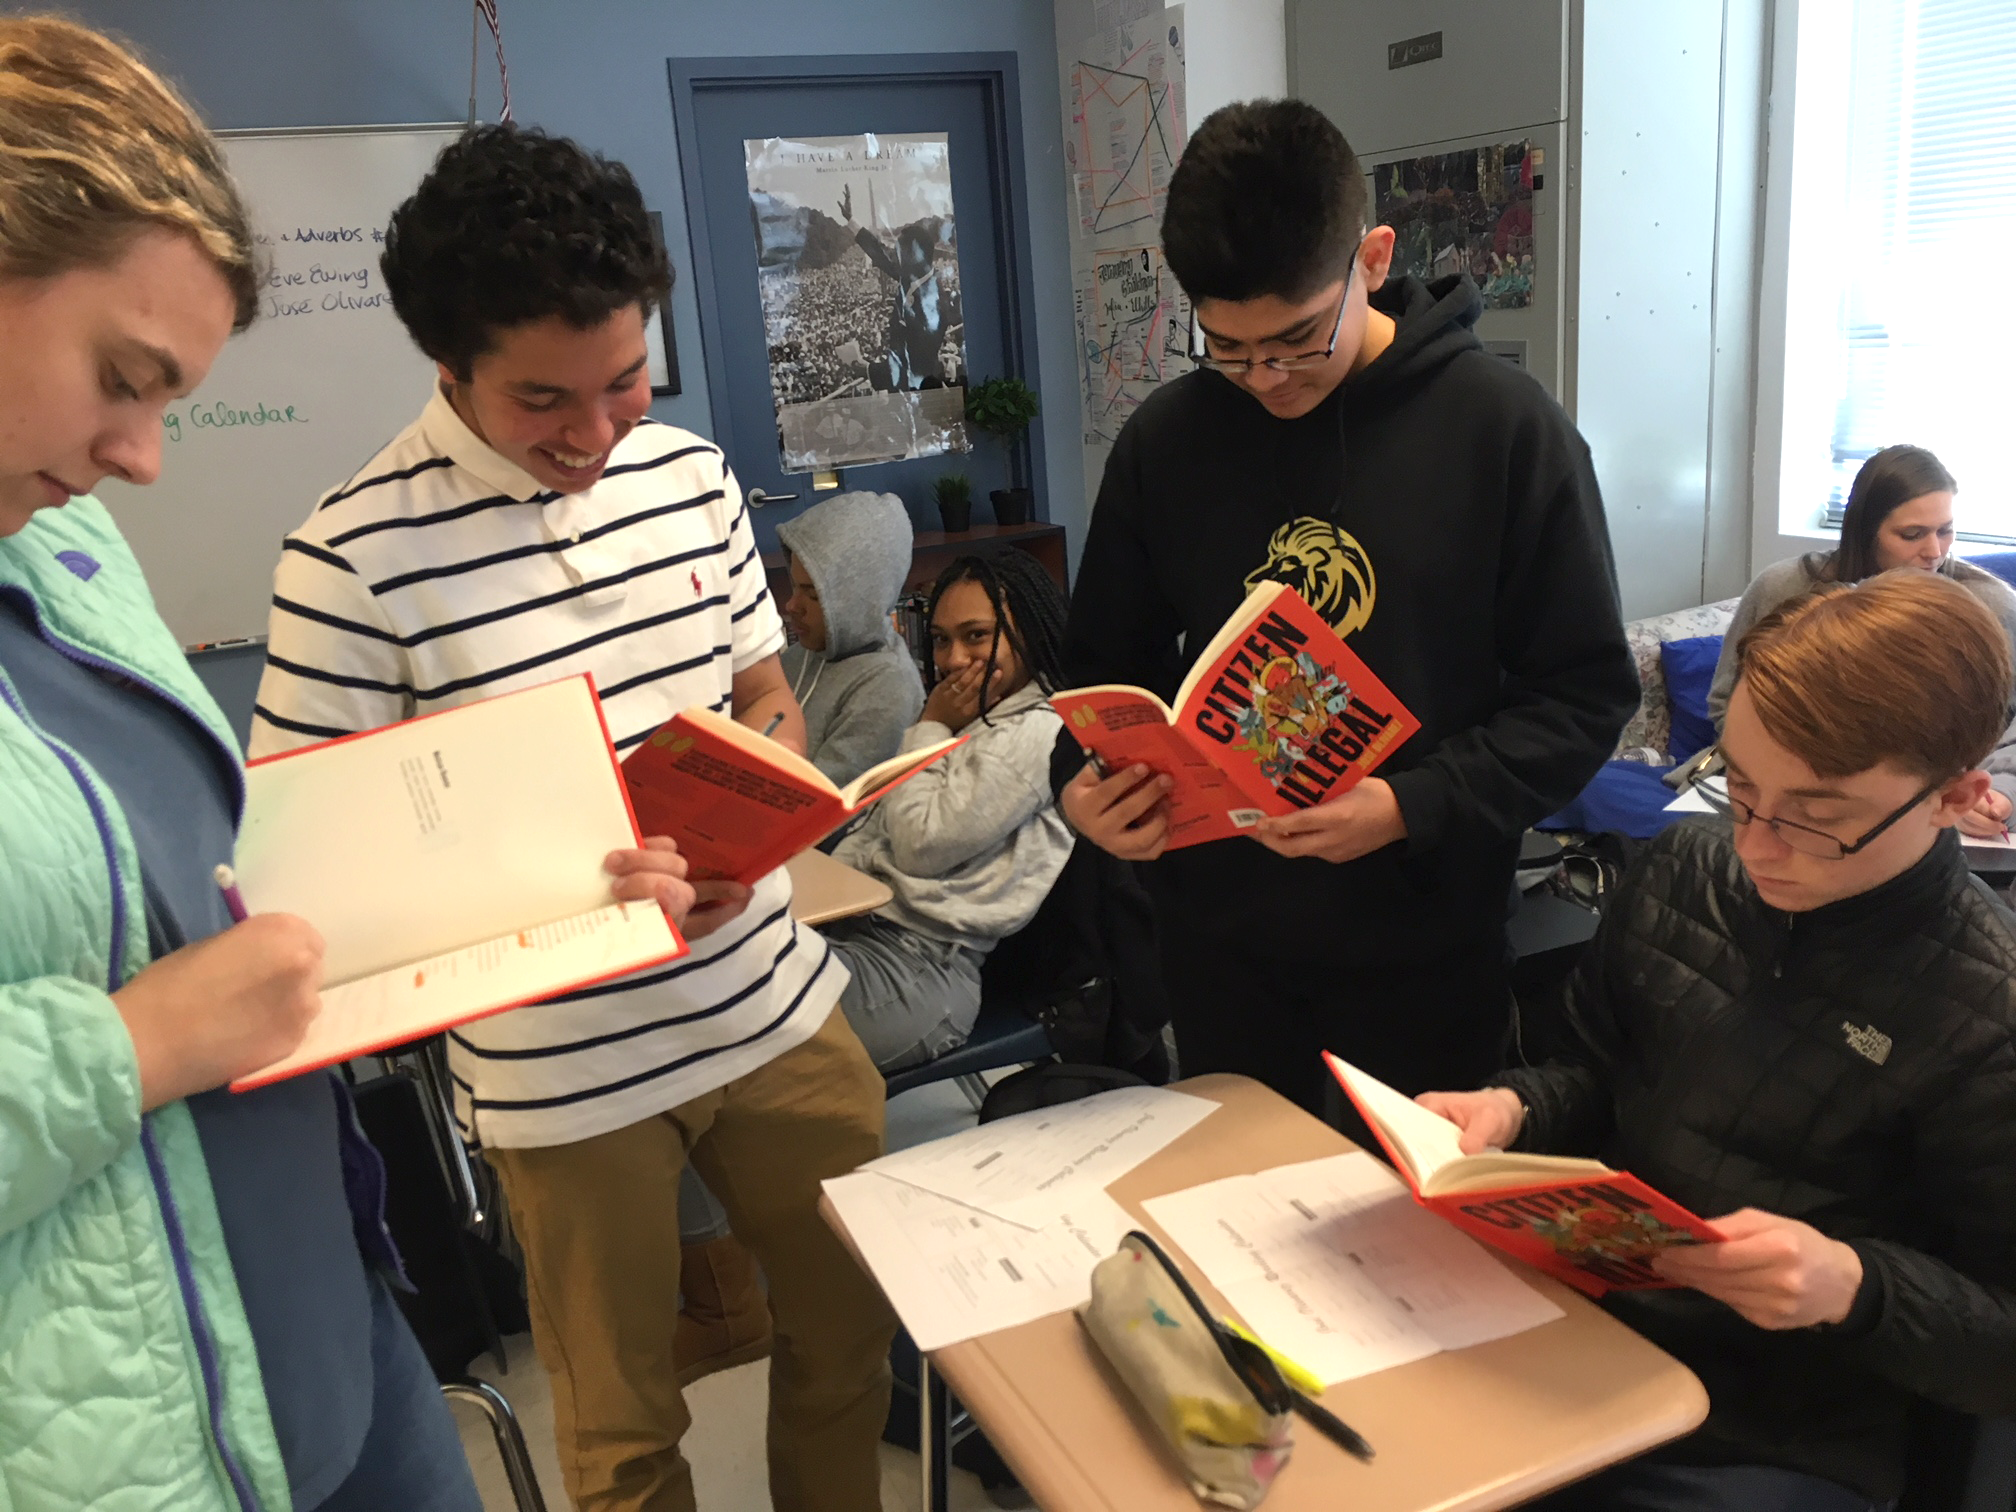 A group of teens in a classroom reading a poetry book titled Citizen Illegal by Jose Olivarez